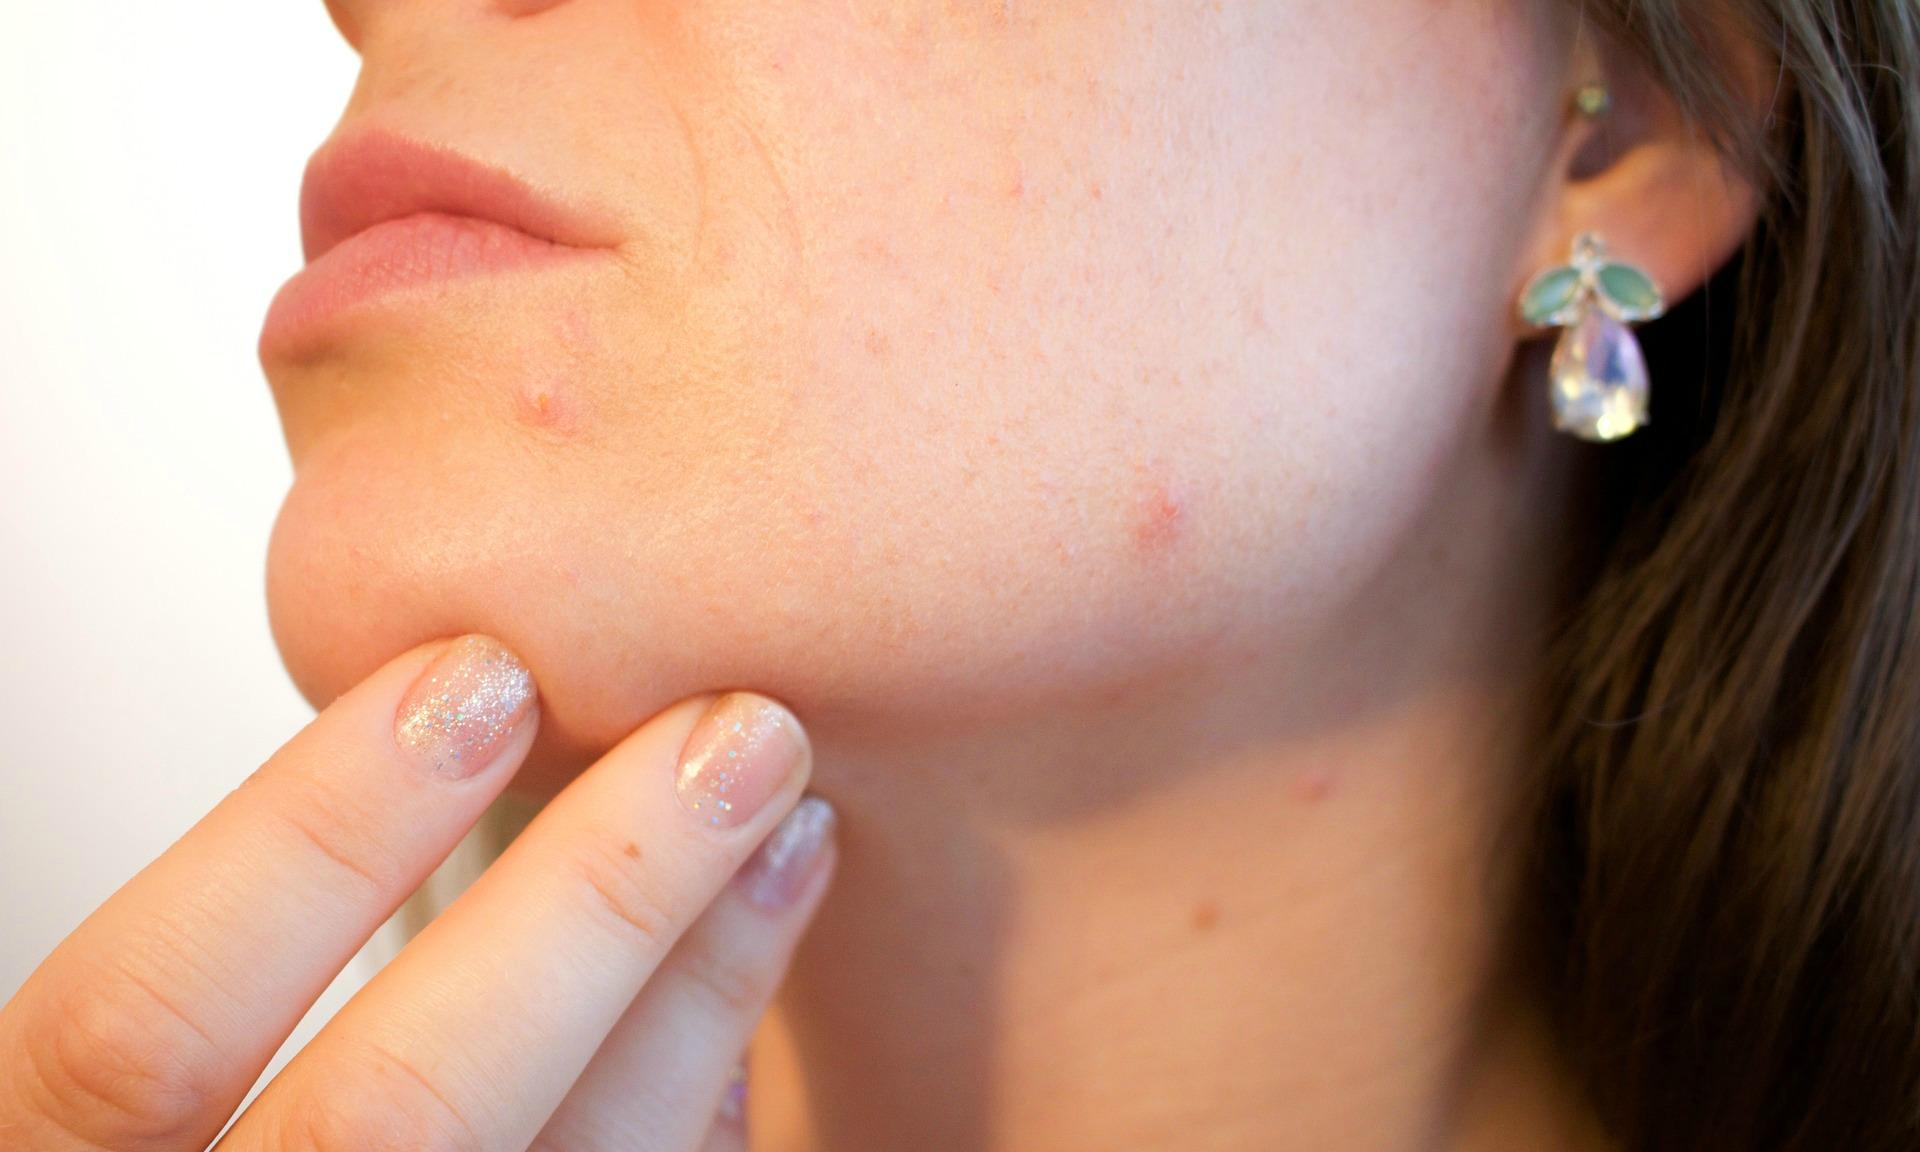 Clear Skin Diet for Acne that's Simple and Foolproof